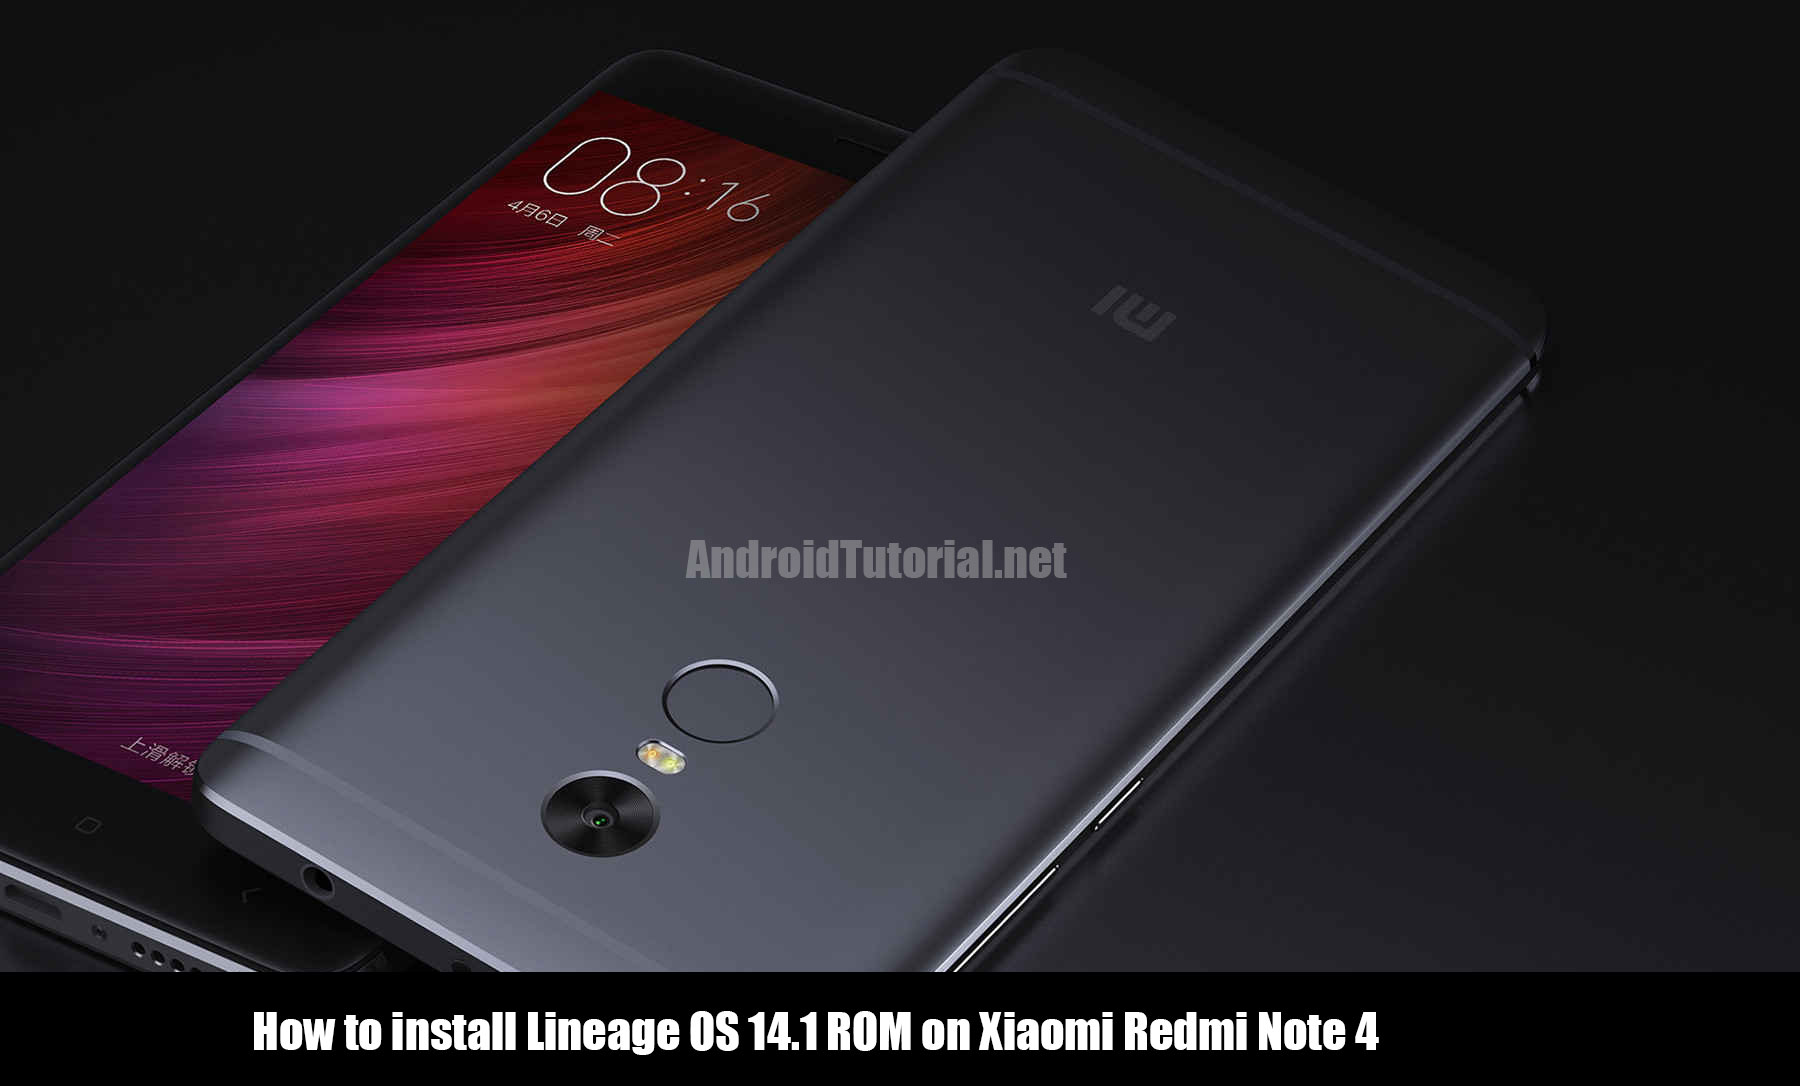 update Redmi Note 4 to lineage os 14.1